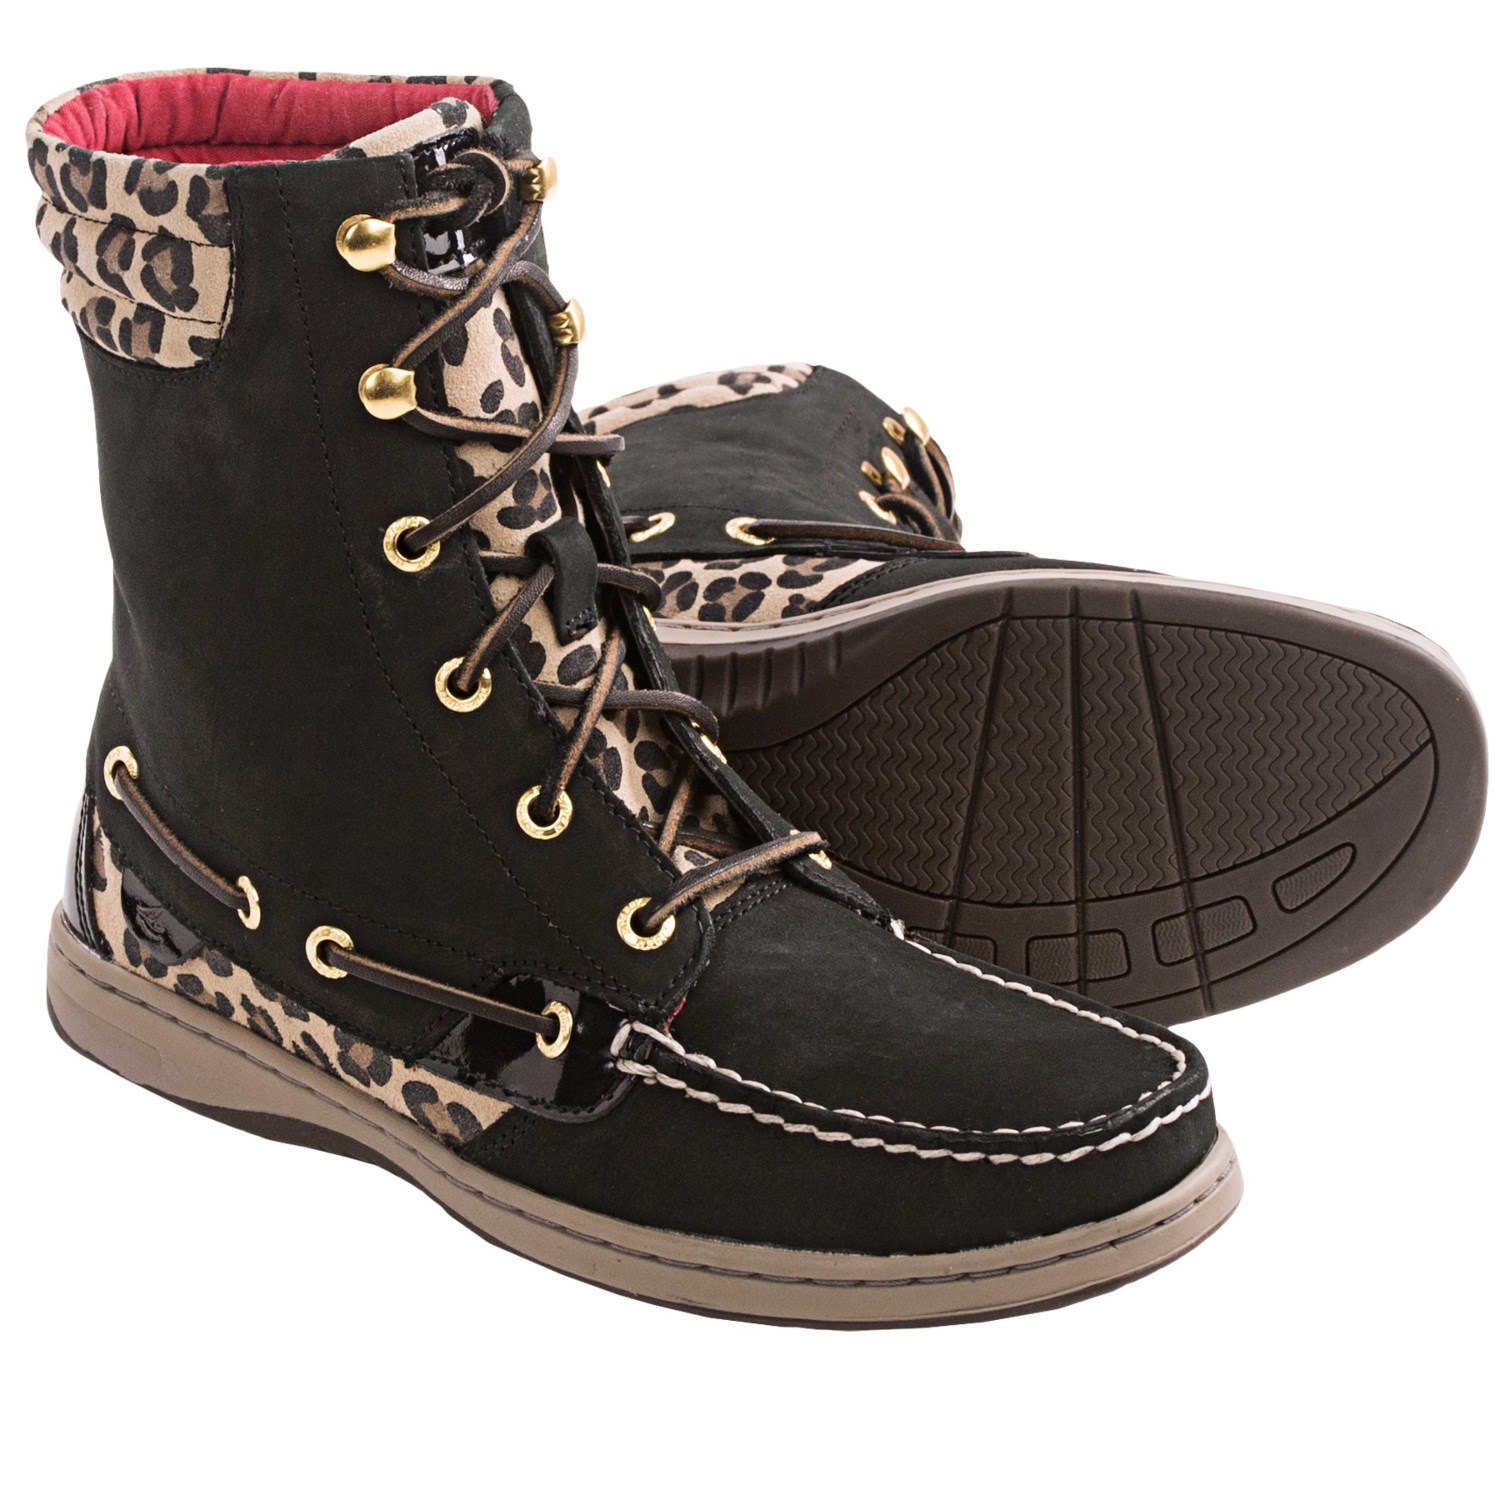 sperry top sider hikerfish boots for